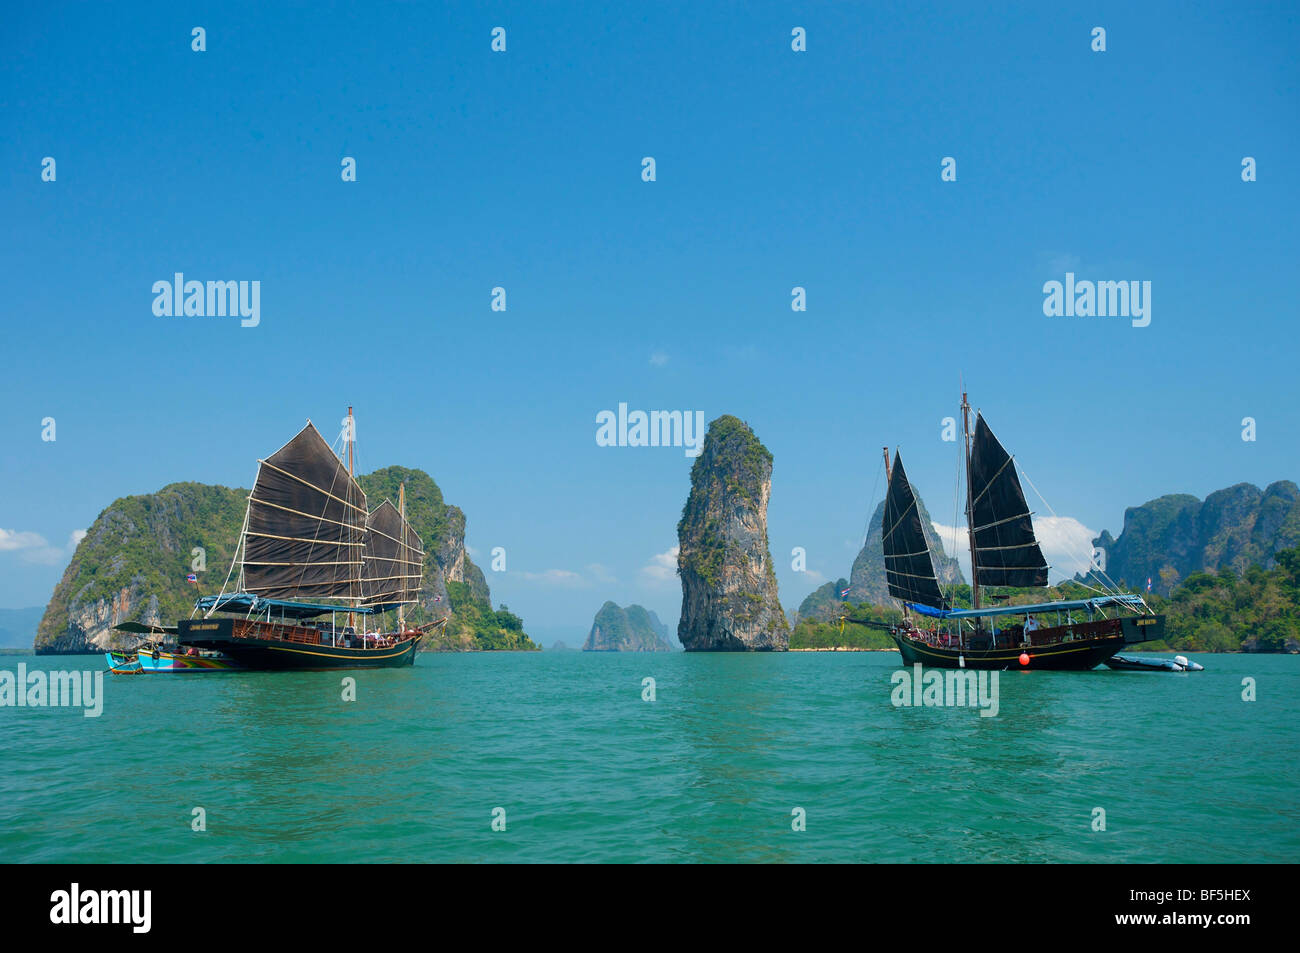 Junk in the Phang Nga Bay, Phuket, Thailand, Asia - Stock Image